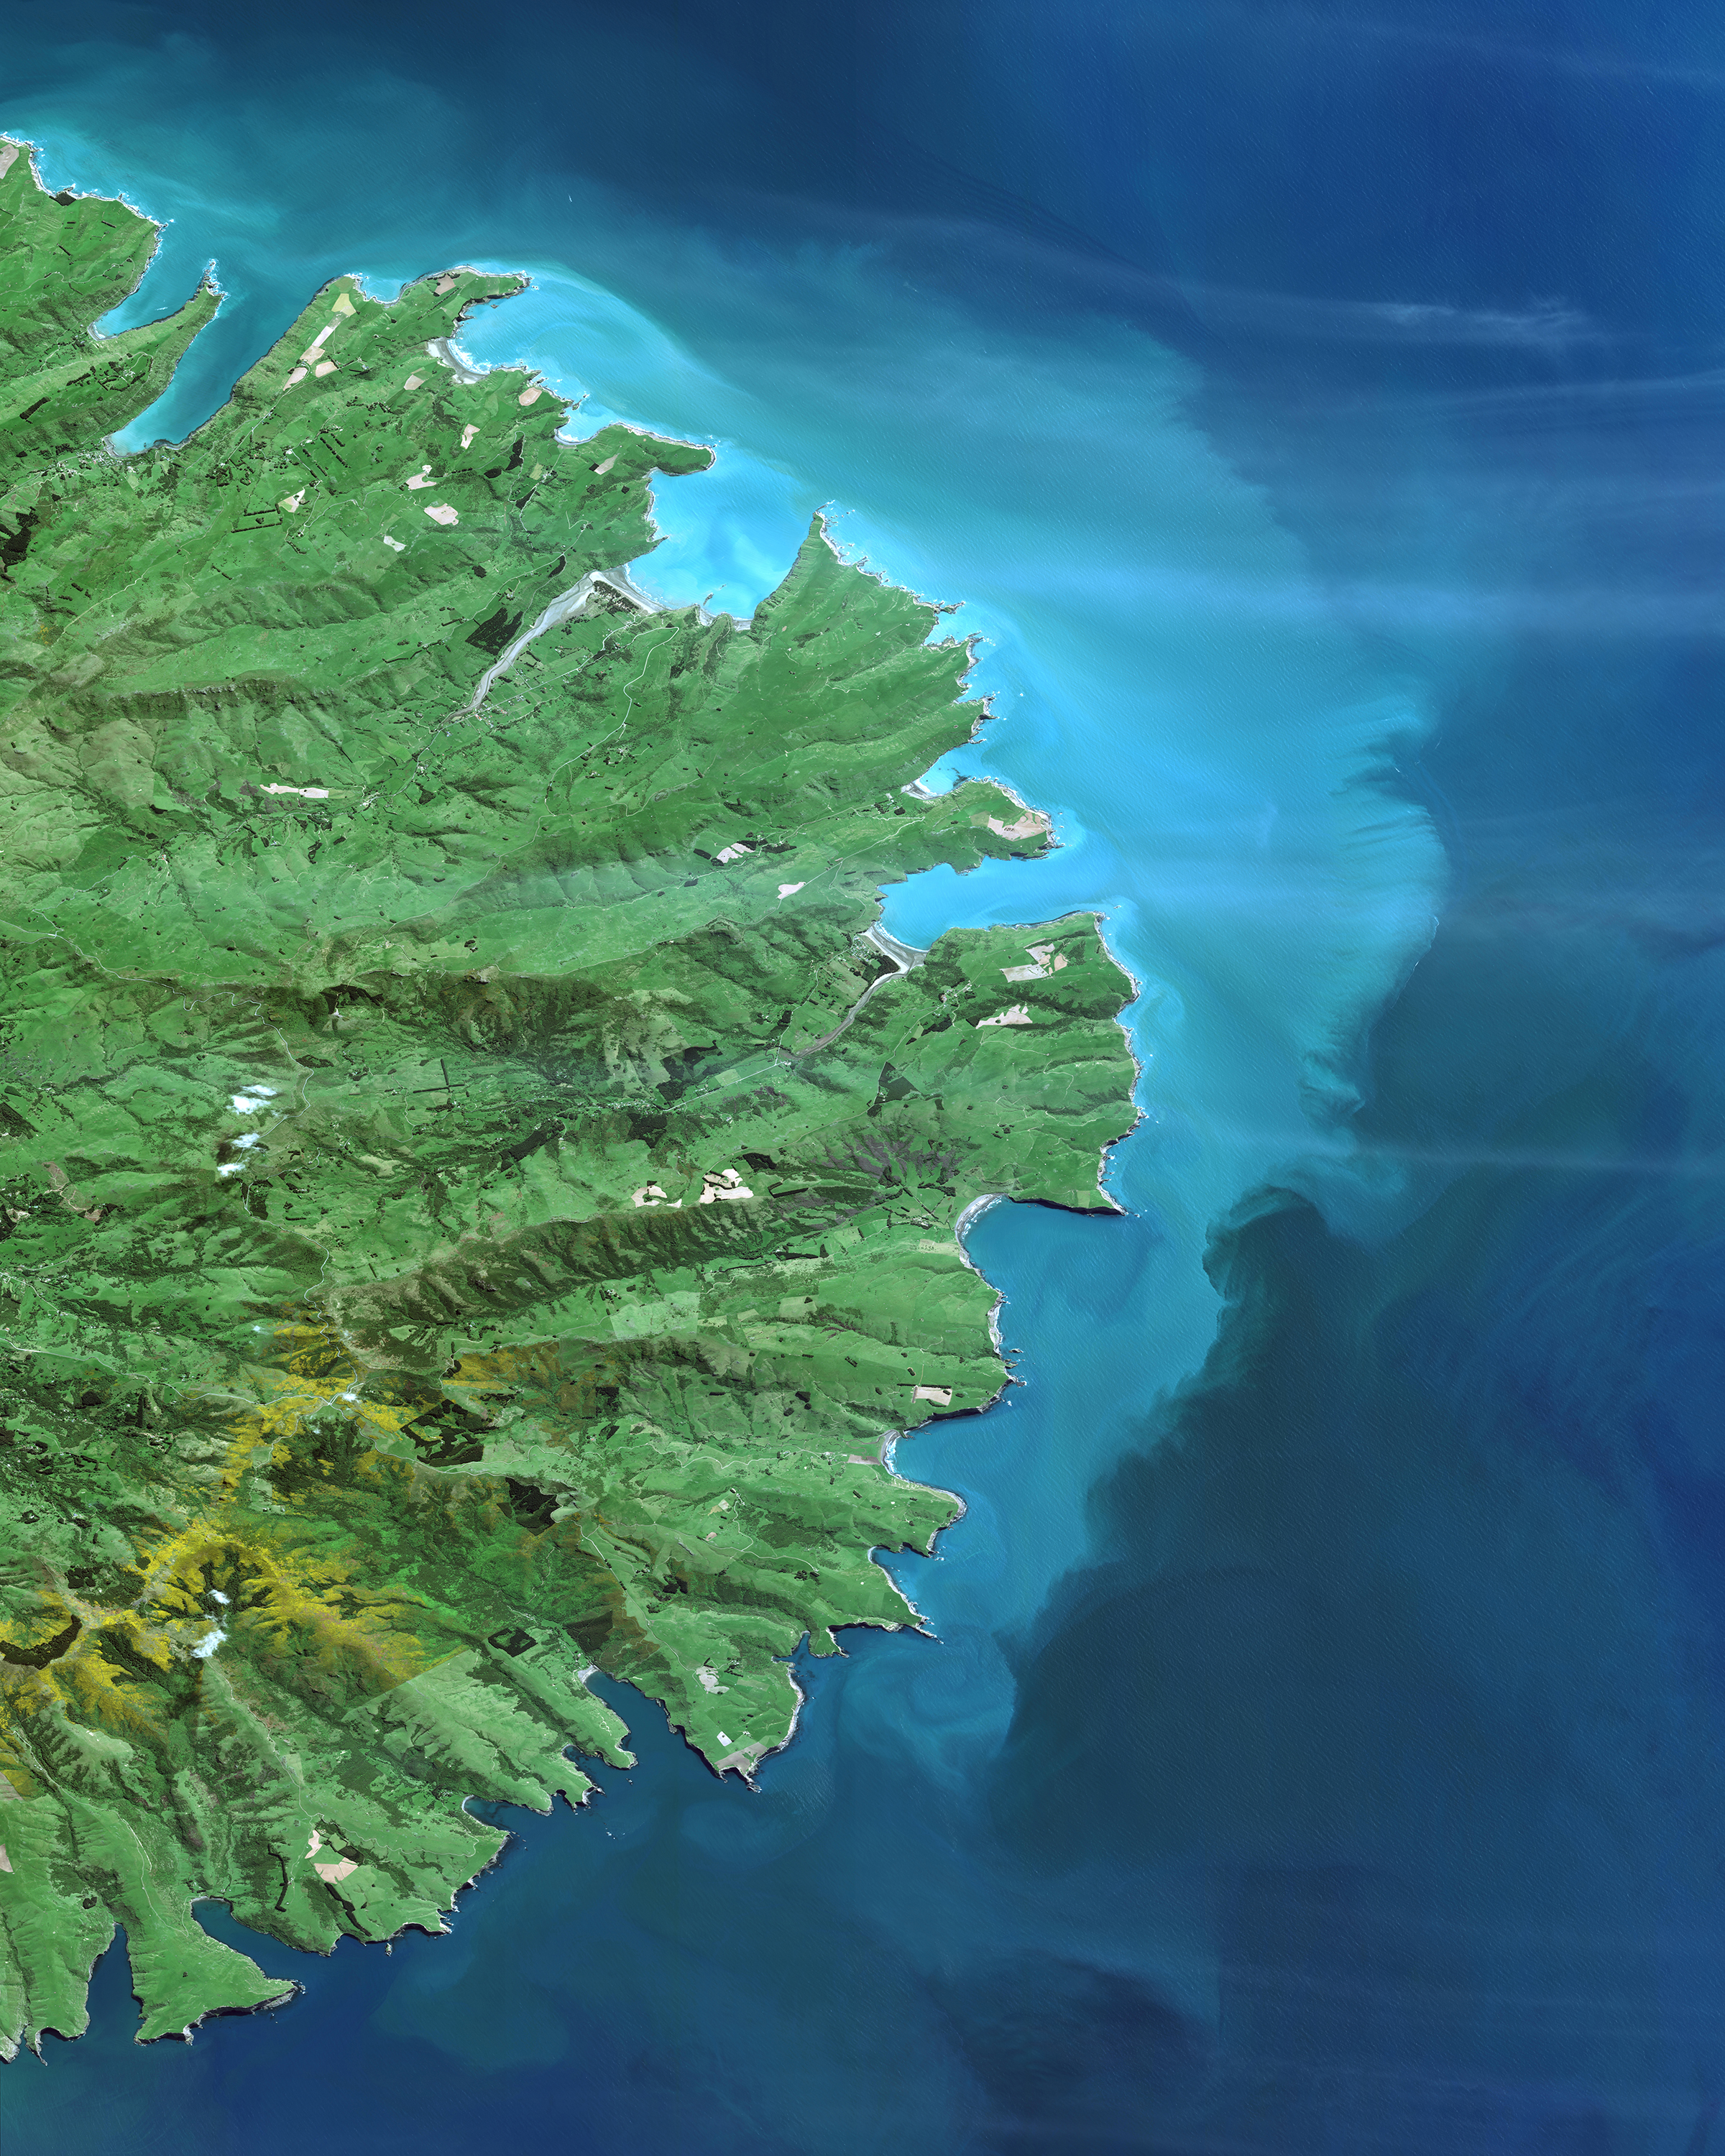 """Check out this amazing Overview of the Banks Peninsula, which juts off the east coast of New Zealand's South Island. The landmass, which is volcanic in origin, has an area of roughly 440 square miles (1,150 sq. km) and encompasses two large harbors and many small bays and coves. It is believed that forests once covered 98% of the Banks Peninsula, yet — as the result of deforestation — less than 2% of the native forest cover remains today.  43°45'00.0""""S, 172°49'58.8""""E  Source imagery: DigitalGlobe"""